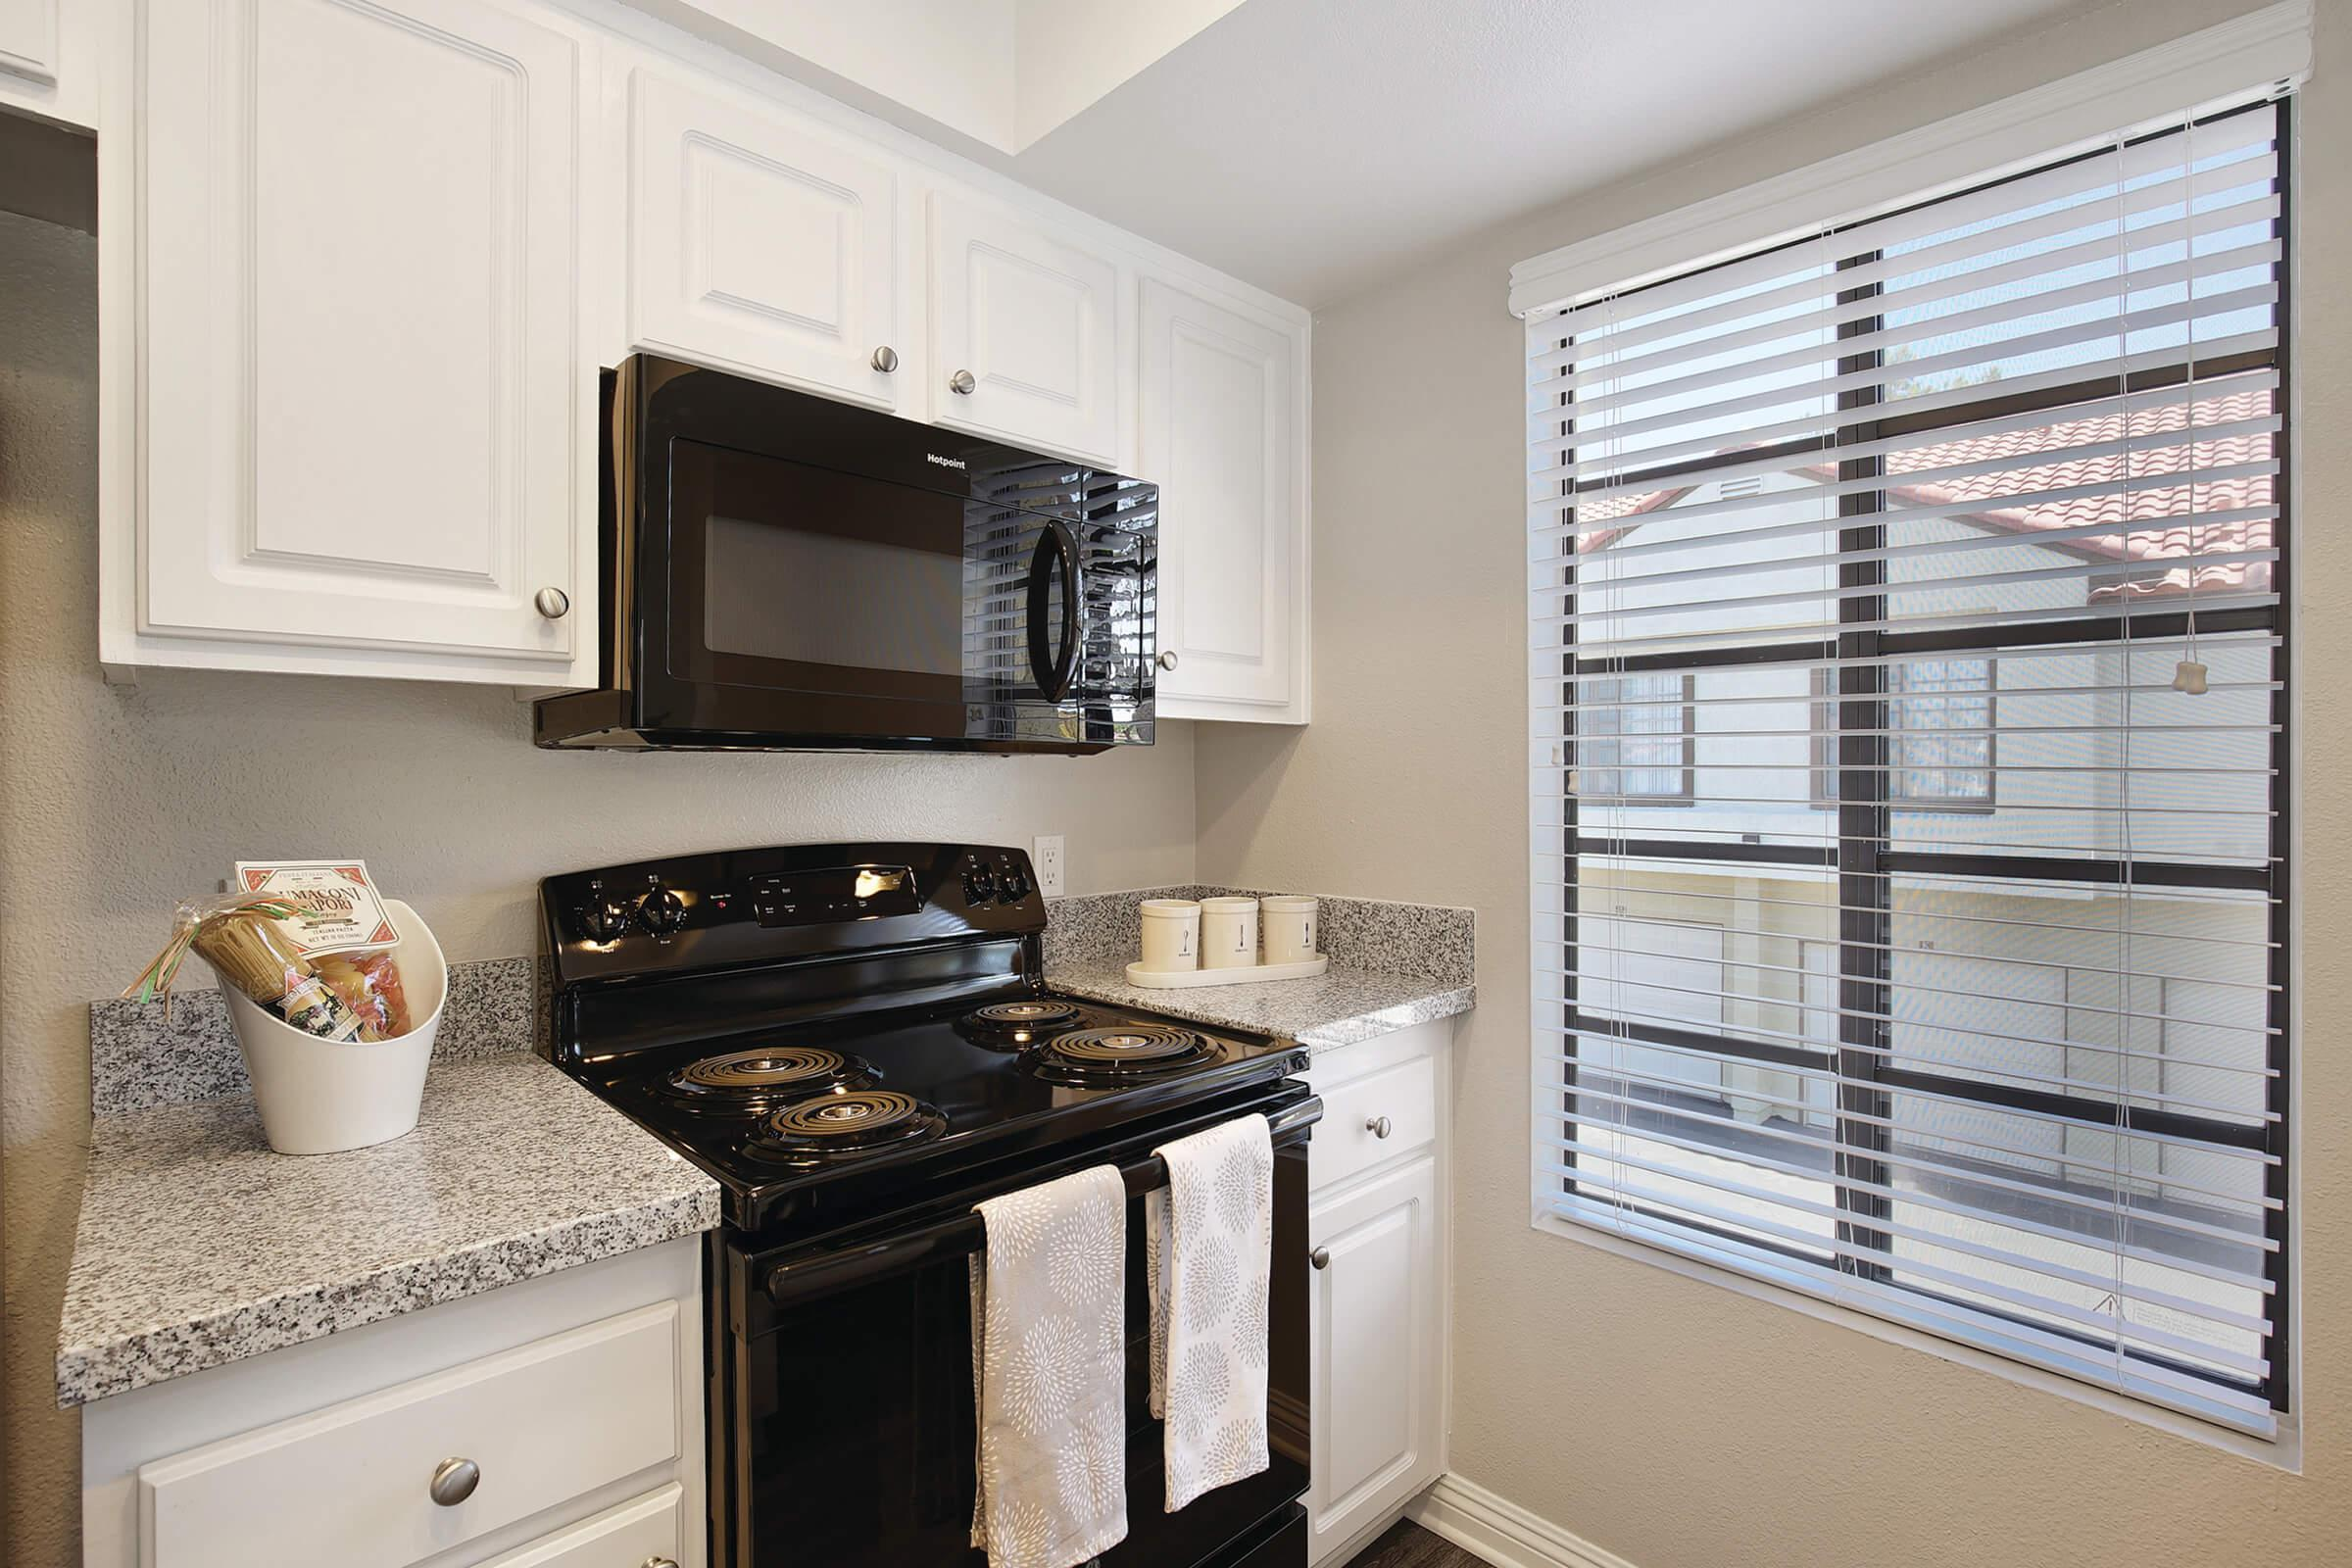 Kitchen stove and microwave